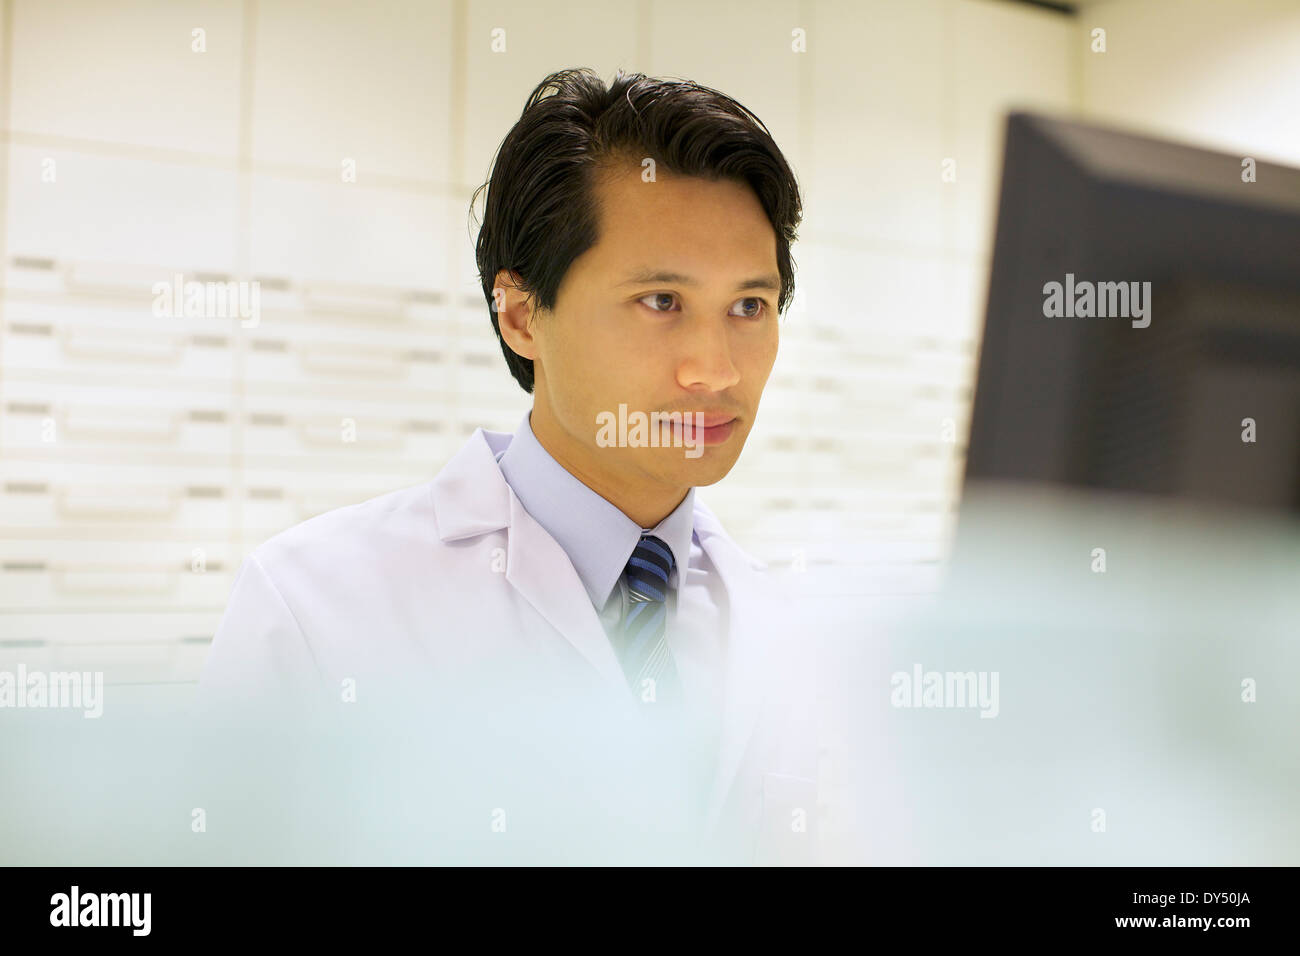 Pharmacist working on computer in pharmacy - Stock Image